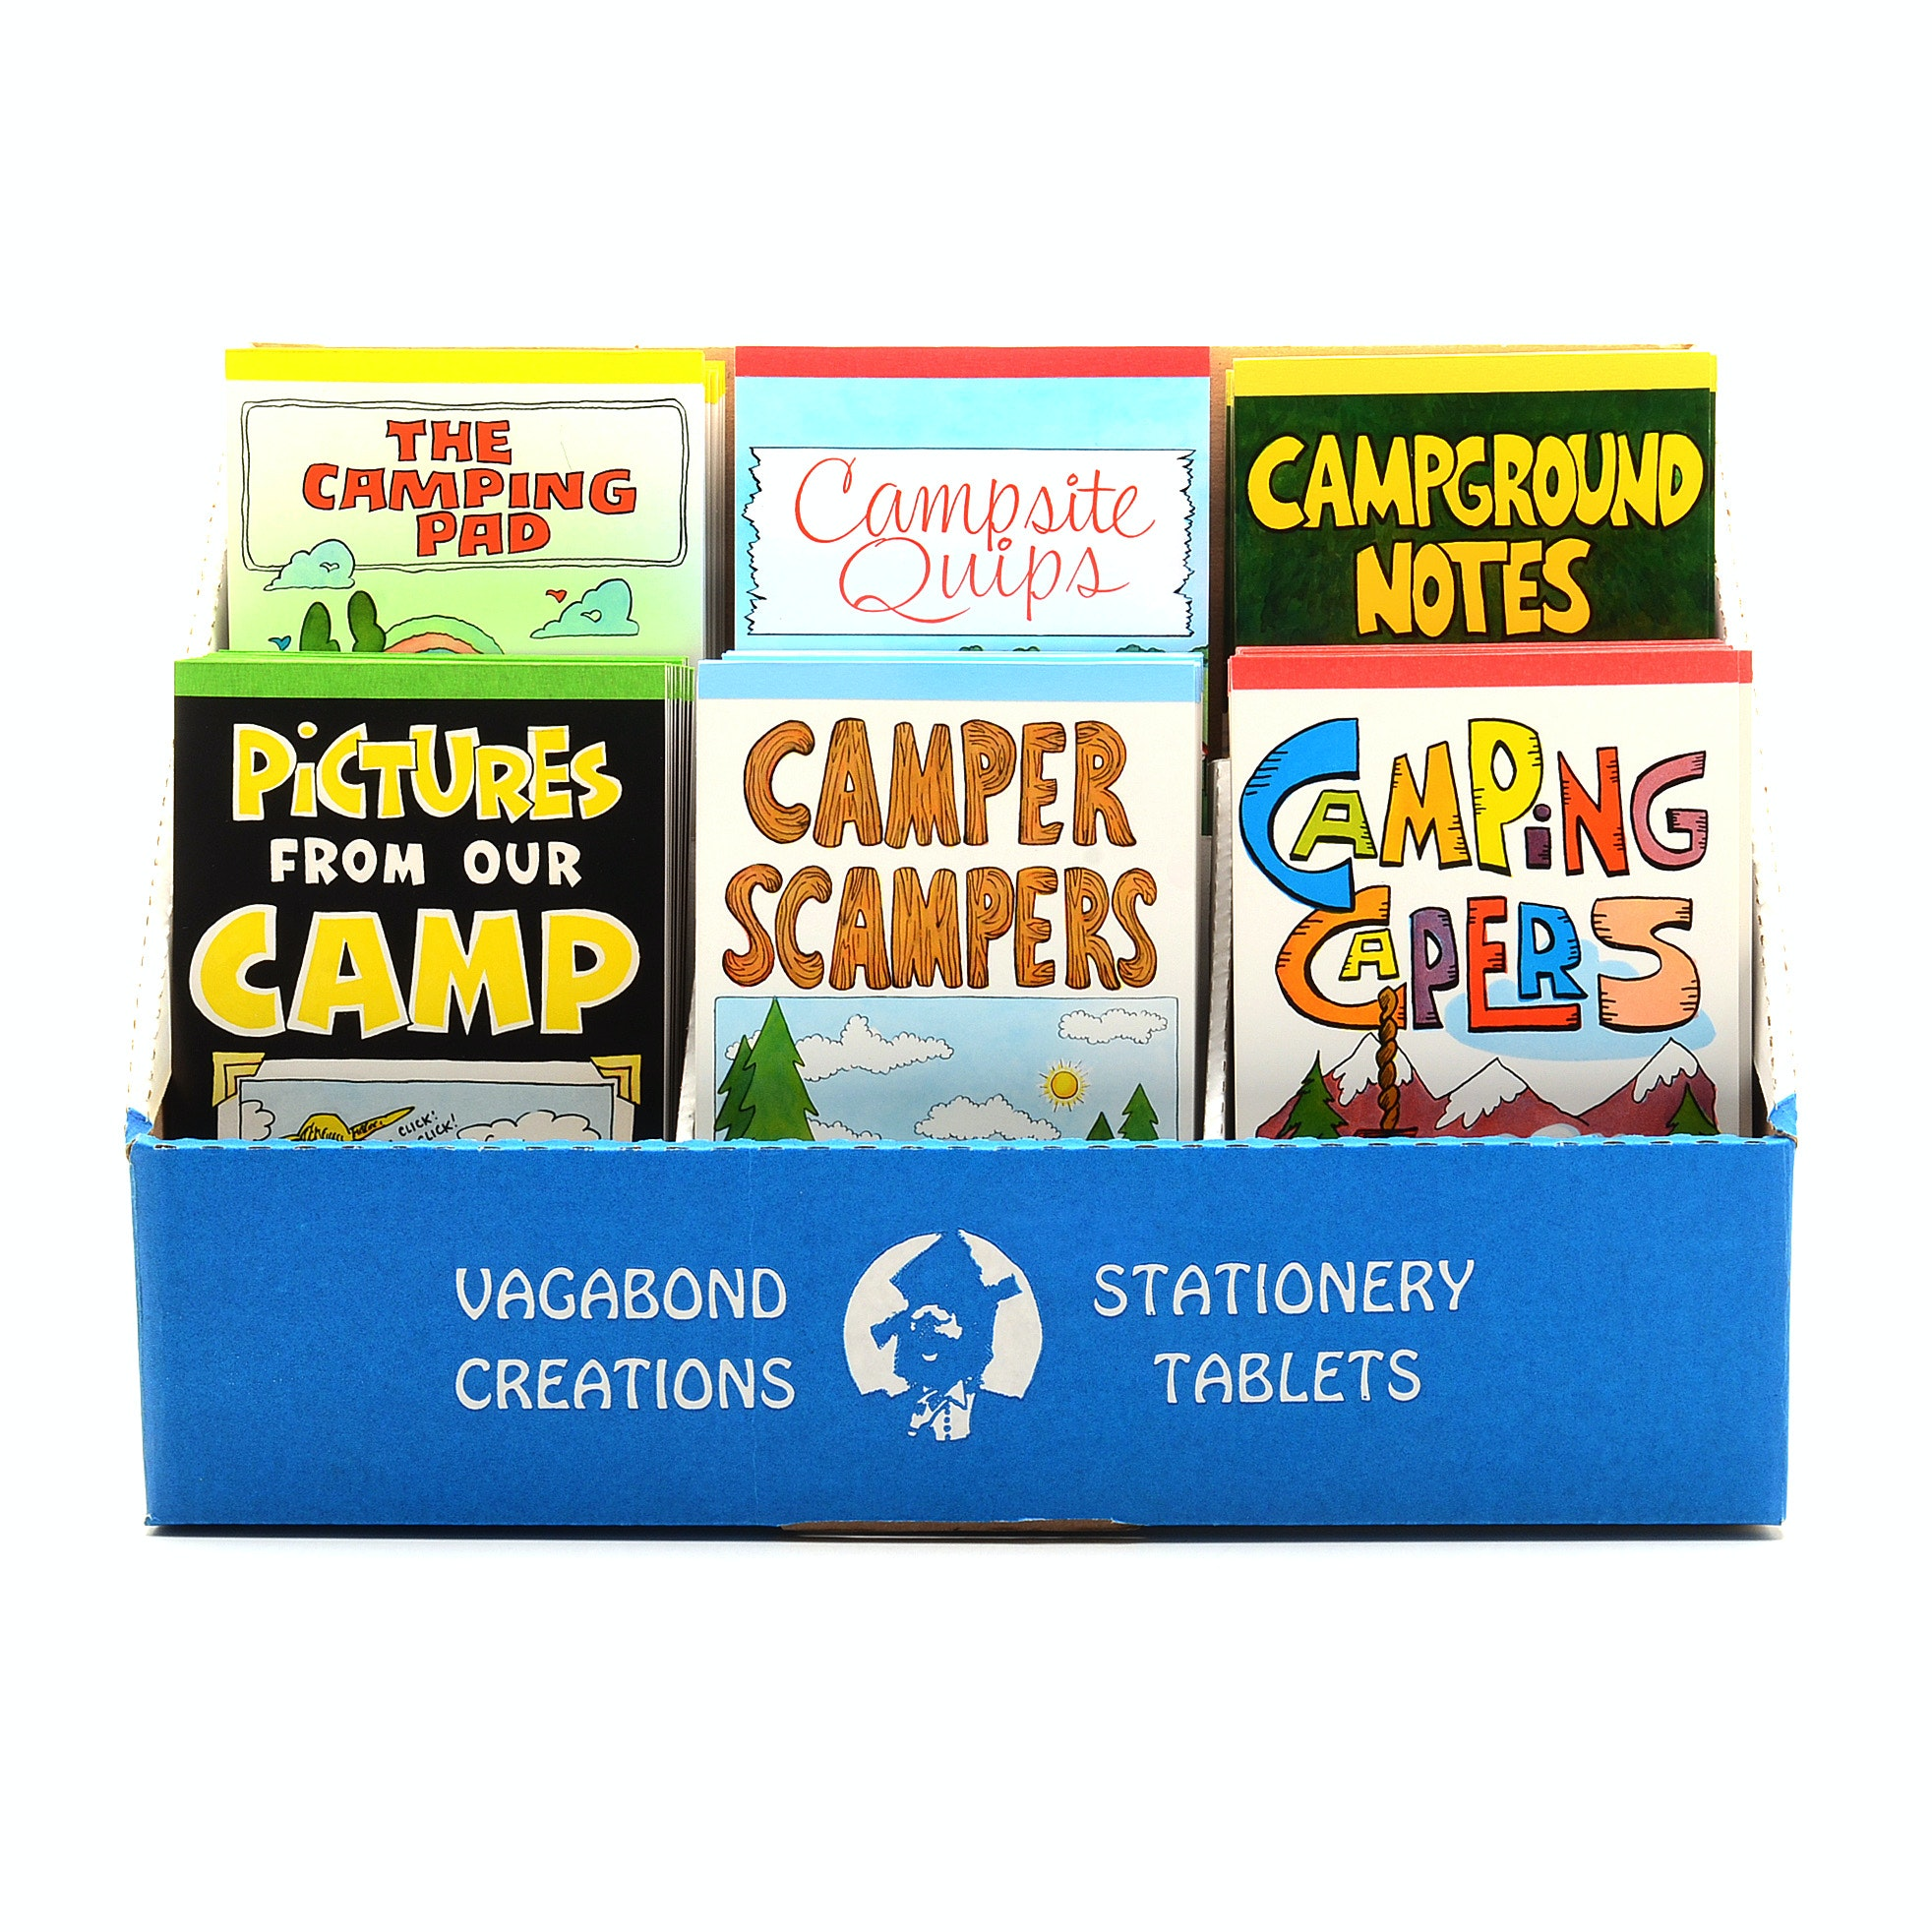 Camping Themed Stationary Tablets Lot from Vagabond Creations